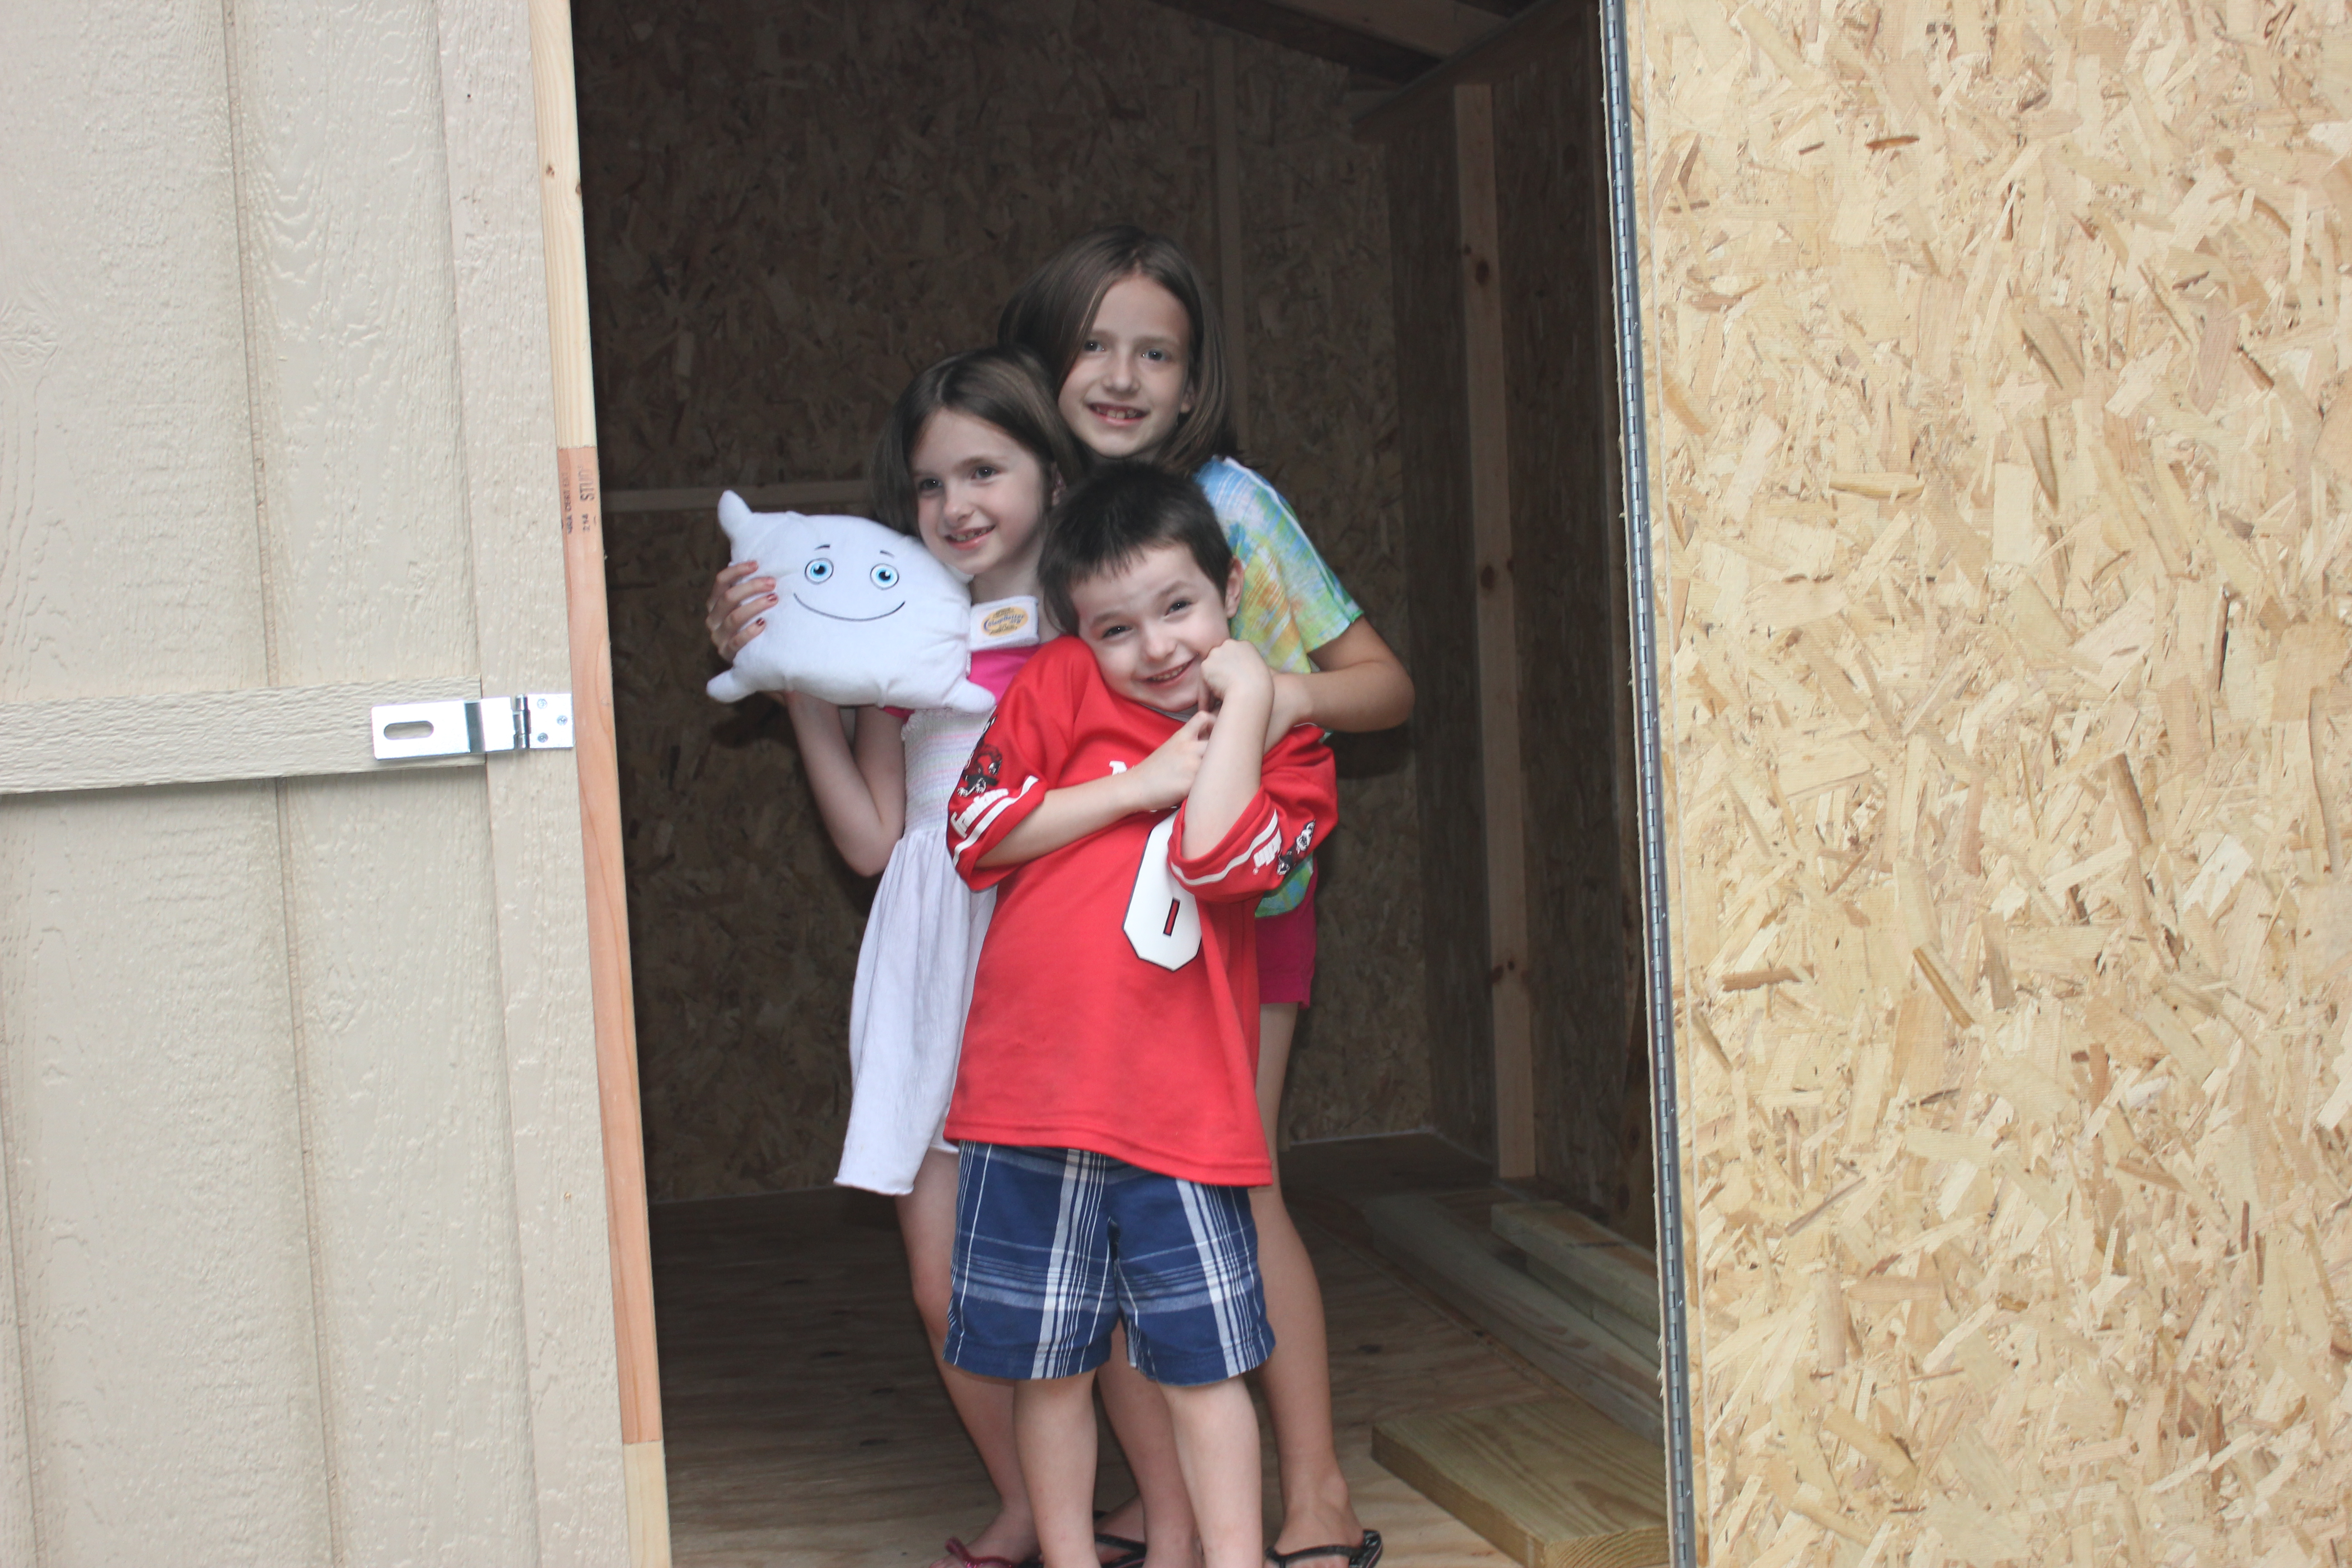 Checking out our new shed with the kiddos!